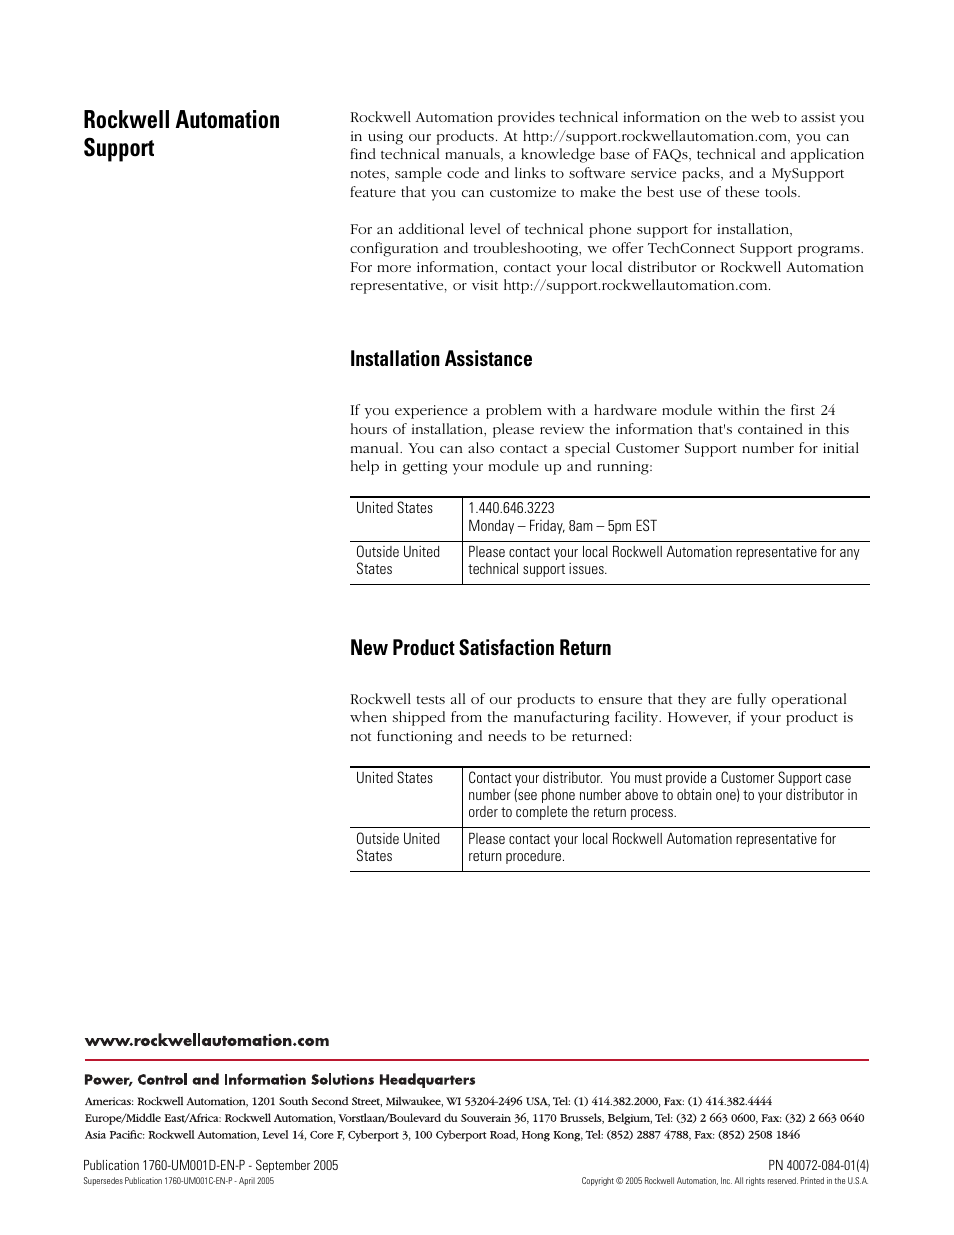 Back cover, Rockwell automation support, Installation assistance | New  product satisfaction return | Rockwell